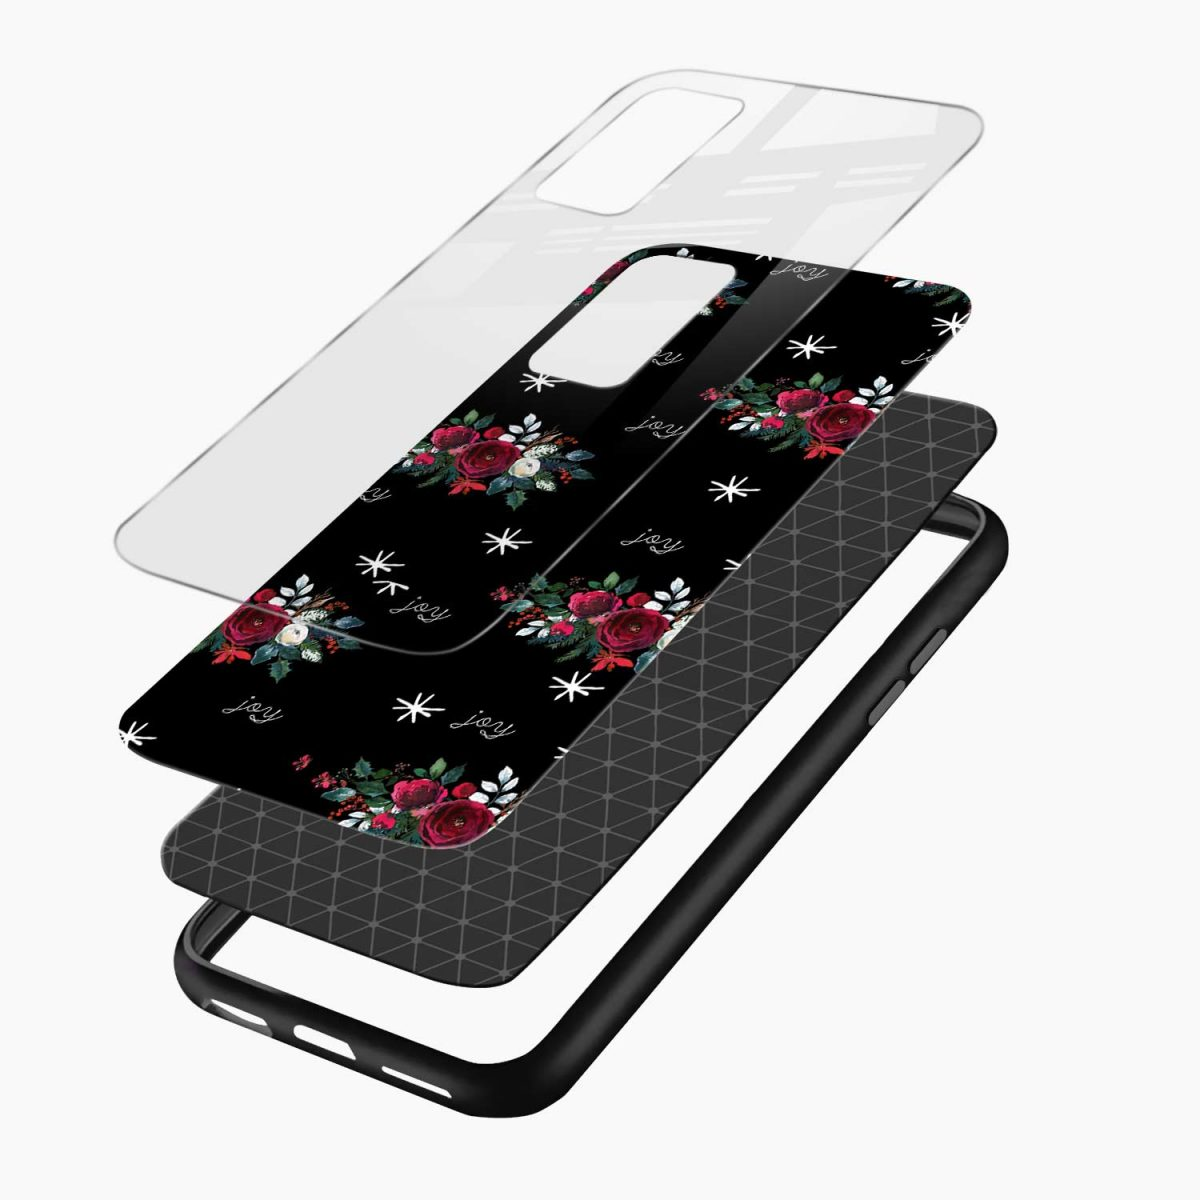 joy floral black colored layers view samsung galaxy note20 ultra back cover